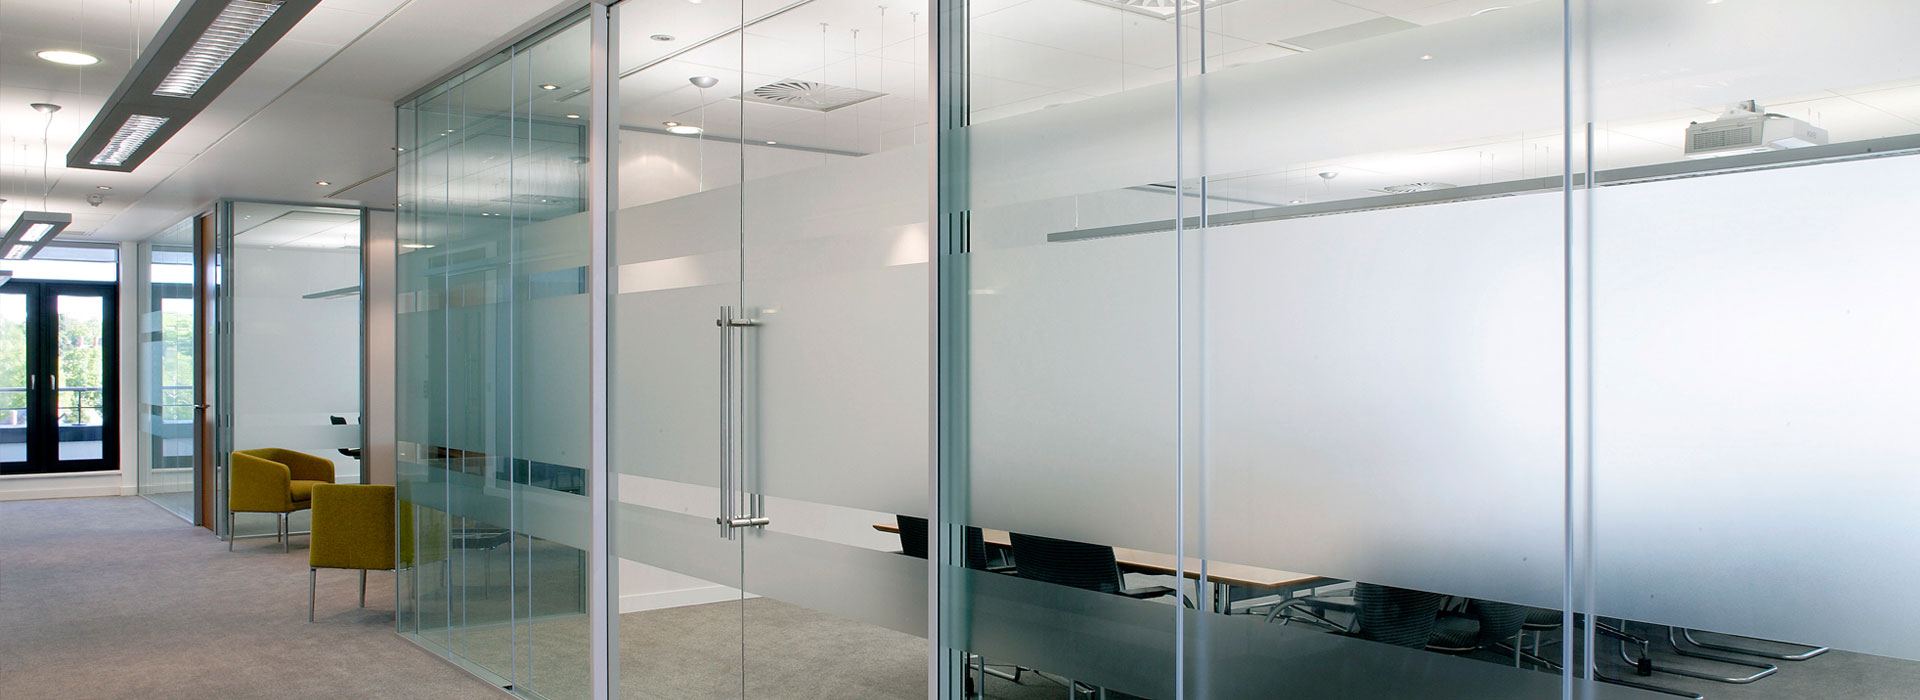 Frameless glass storefront door - Frameless Glass Storefront Door 48